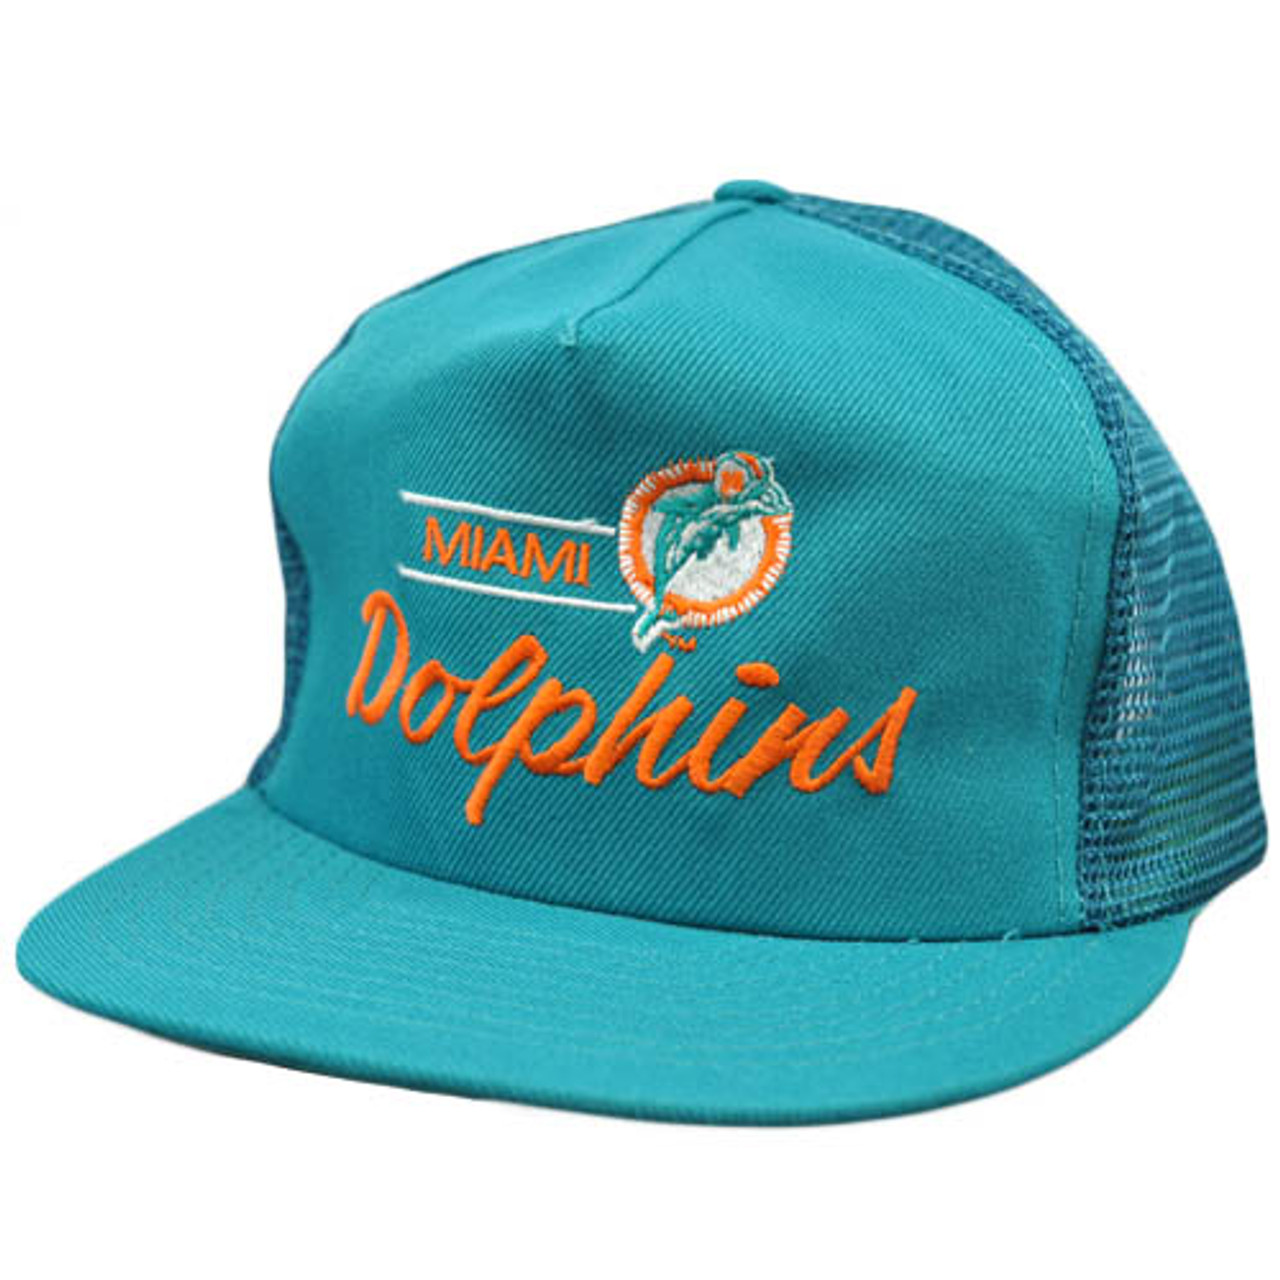 NFL Miami Dolphins Vintage Mesh Flat Bill Teal Orange Annco Snapback Hat Cap fbe4a9890e63